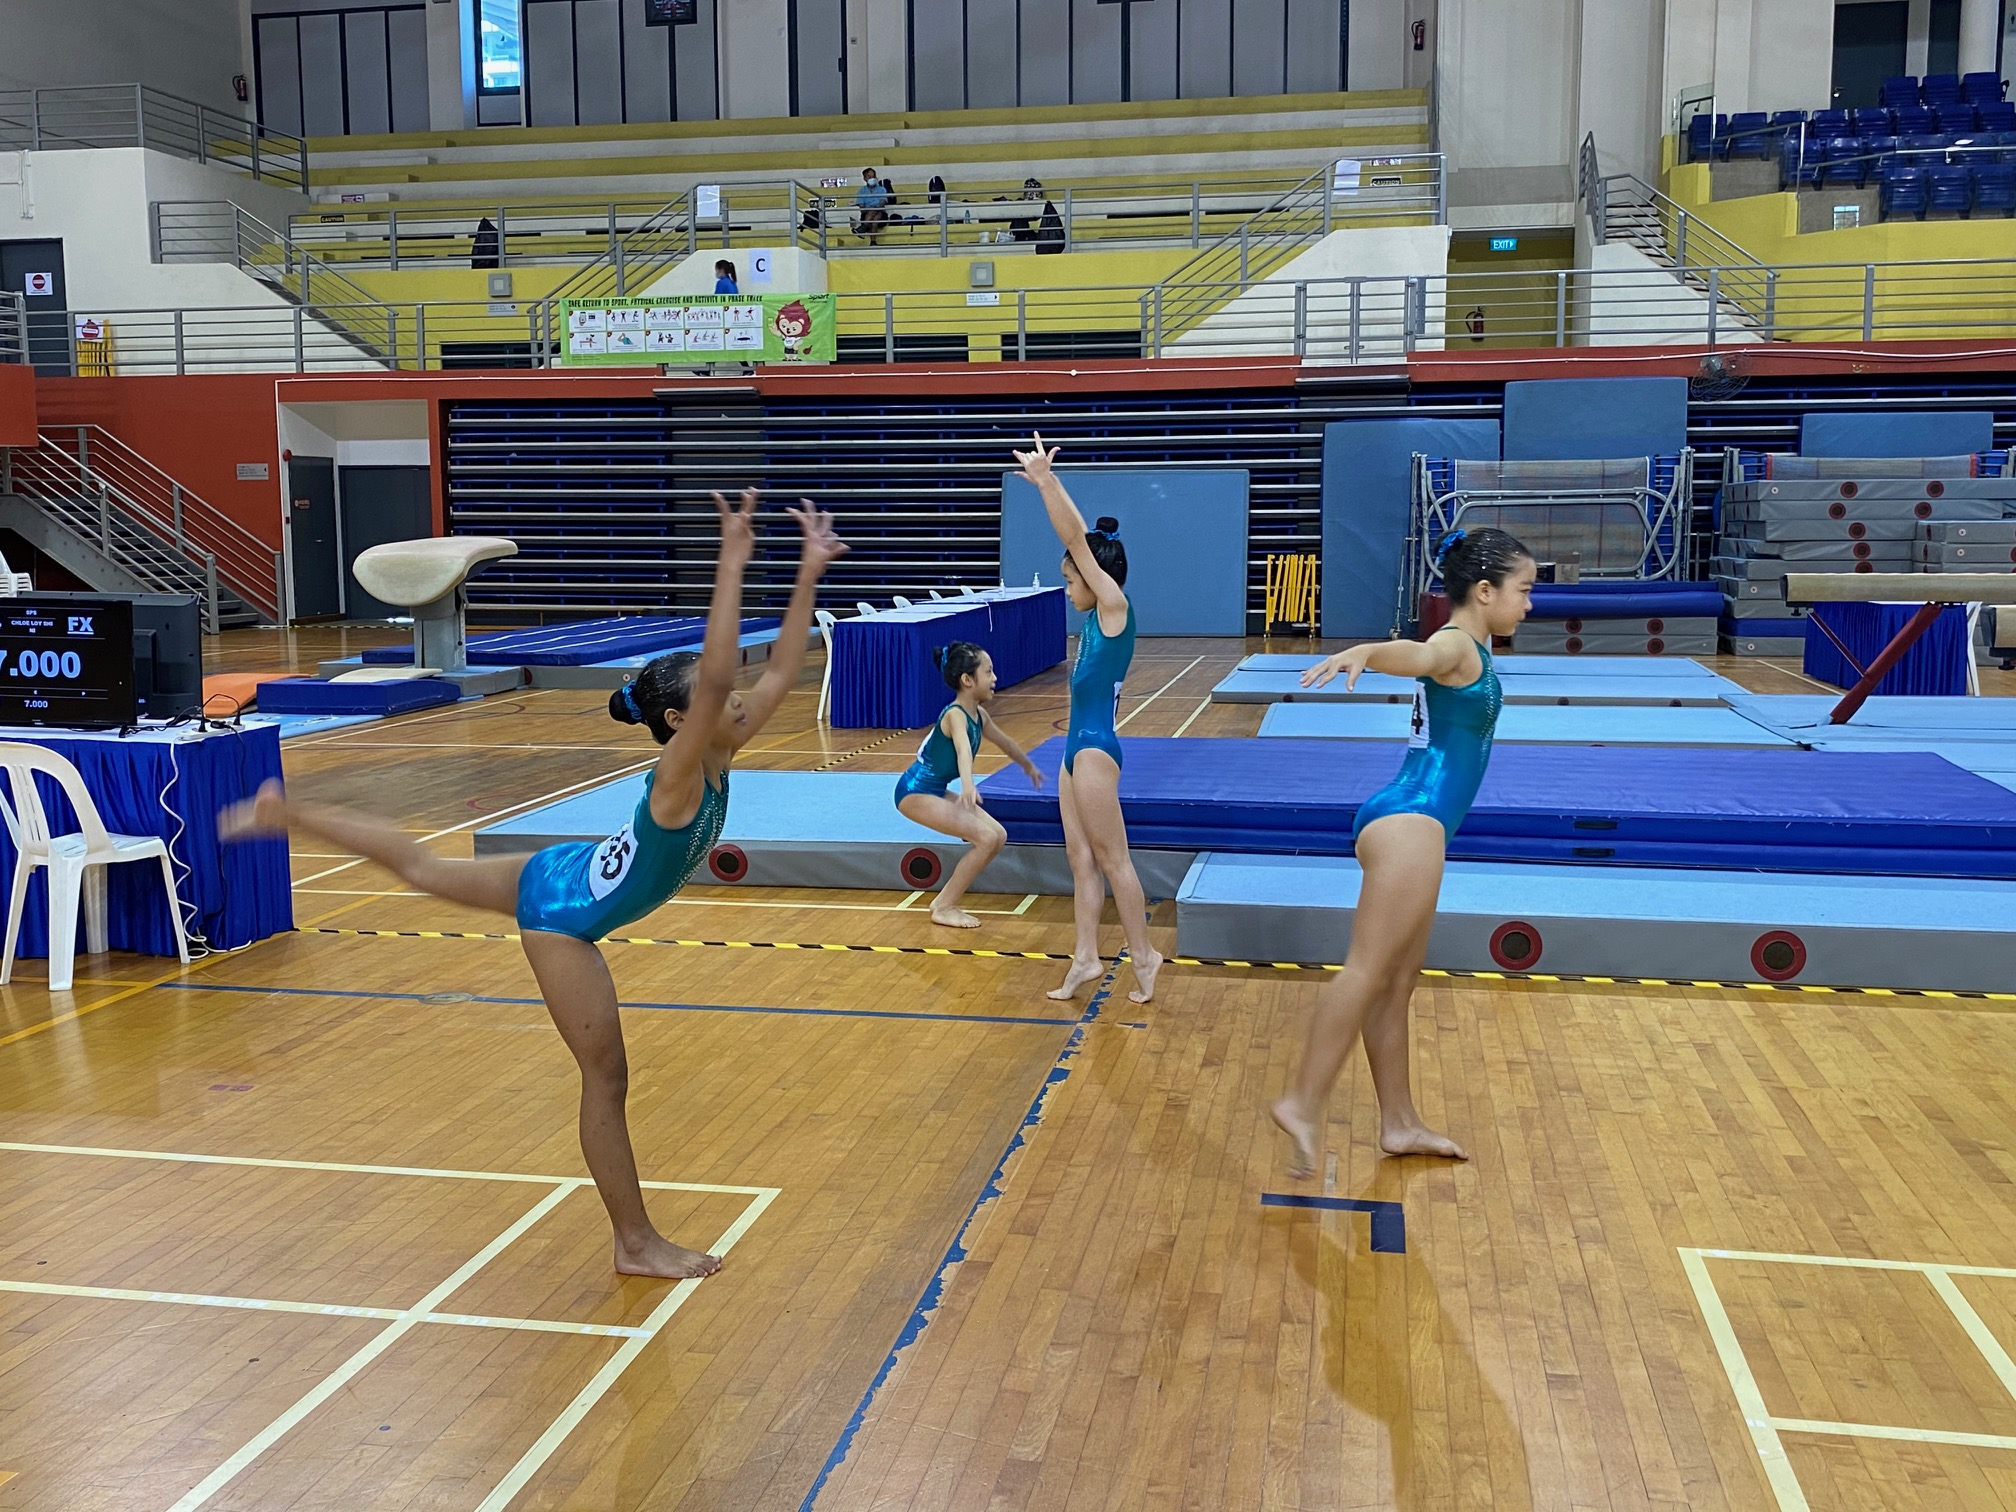 NSG Snr Div Gymnastics: Youngsters light up competition with flips, twists and somersaults!